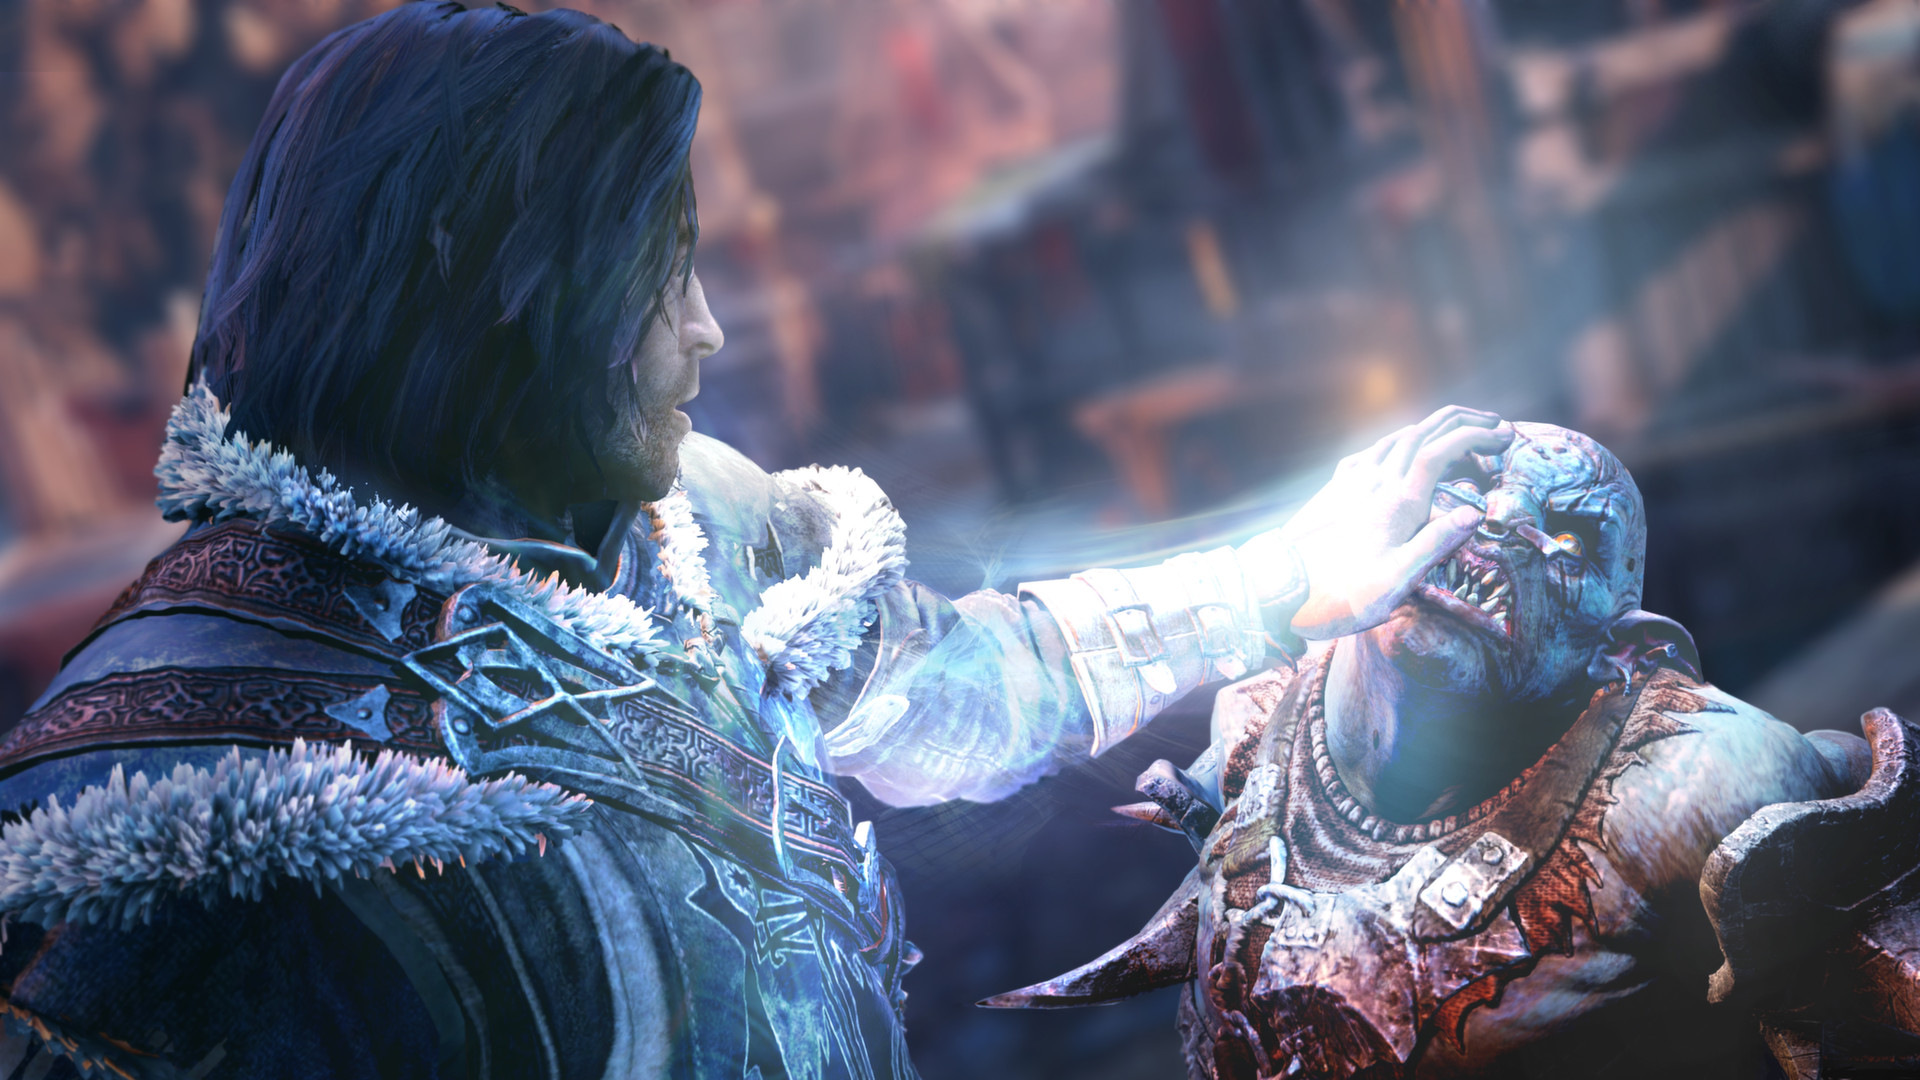 [PC] Middle-earth: Shadow of Mordor - CODEX [ 2014 / Action, Adventure ]